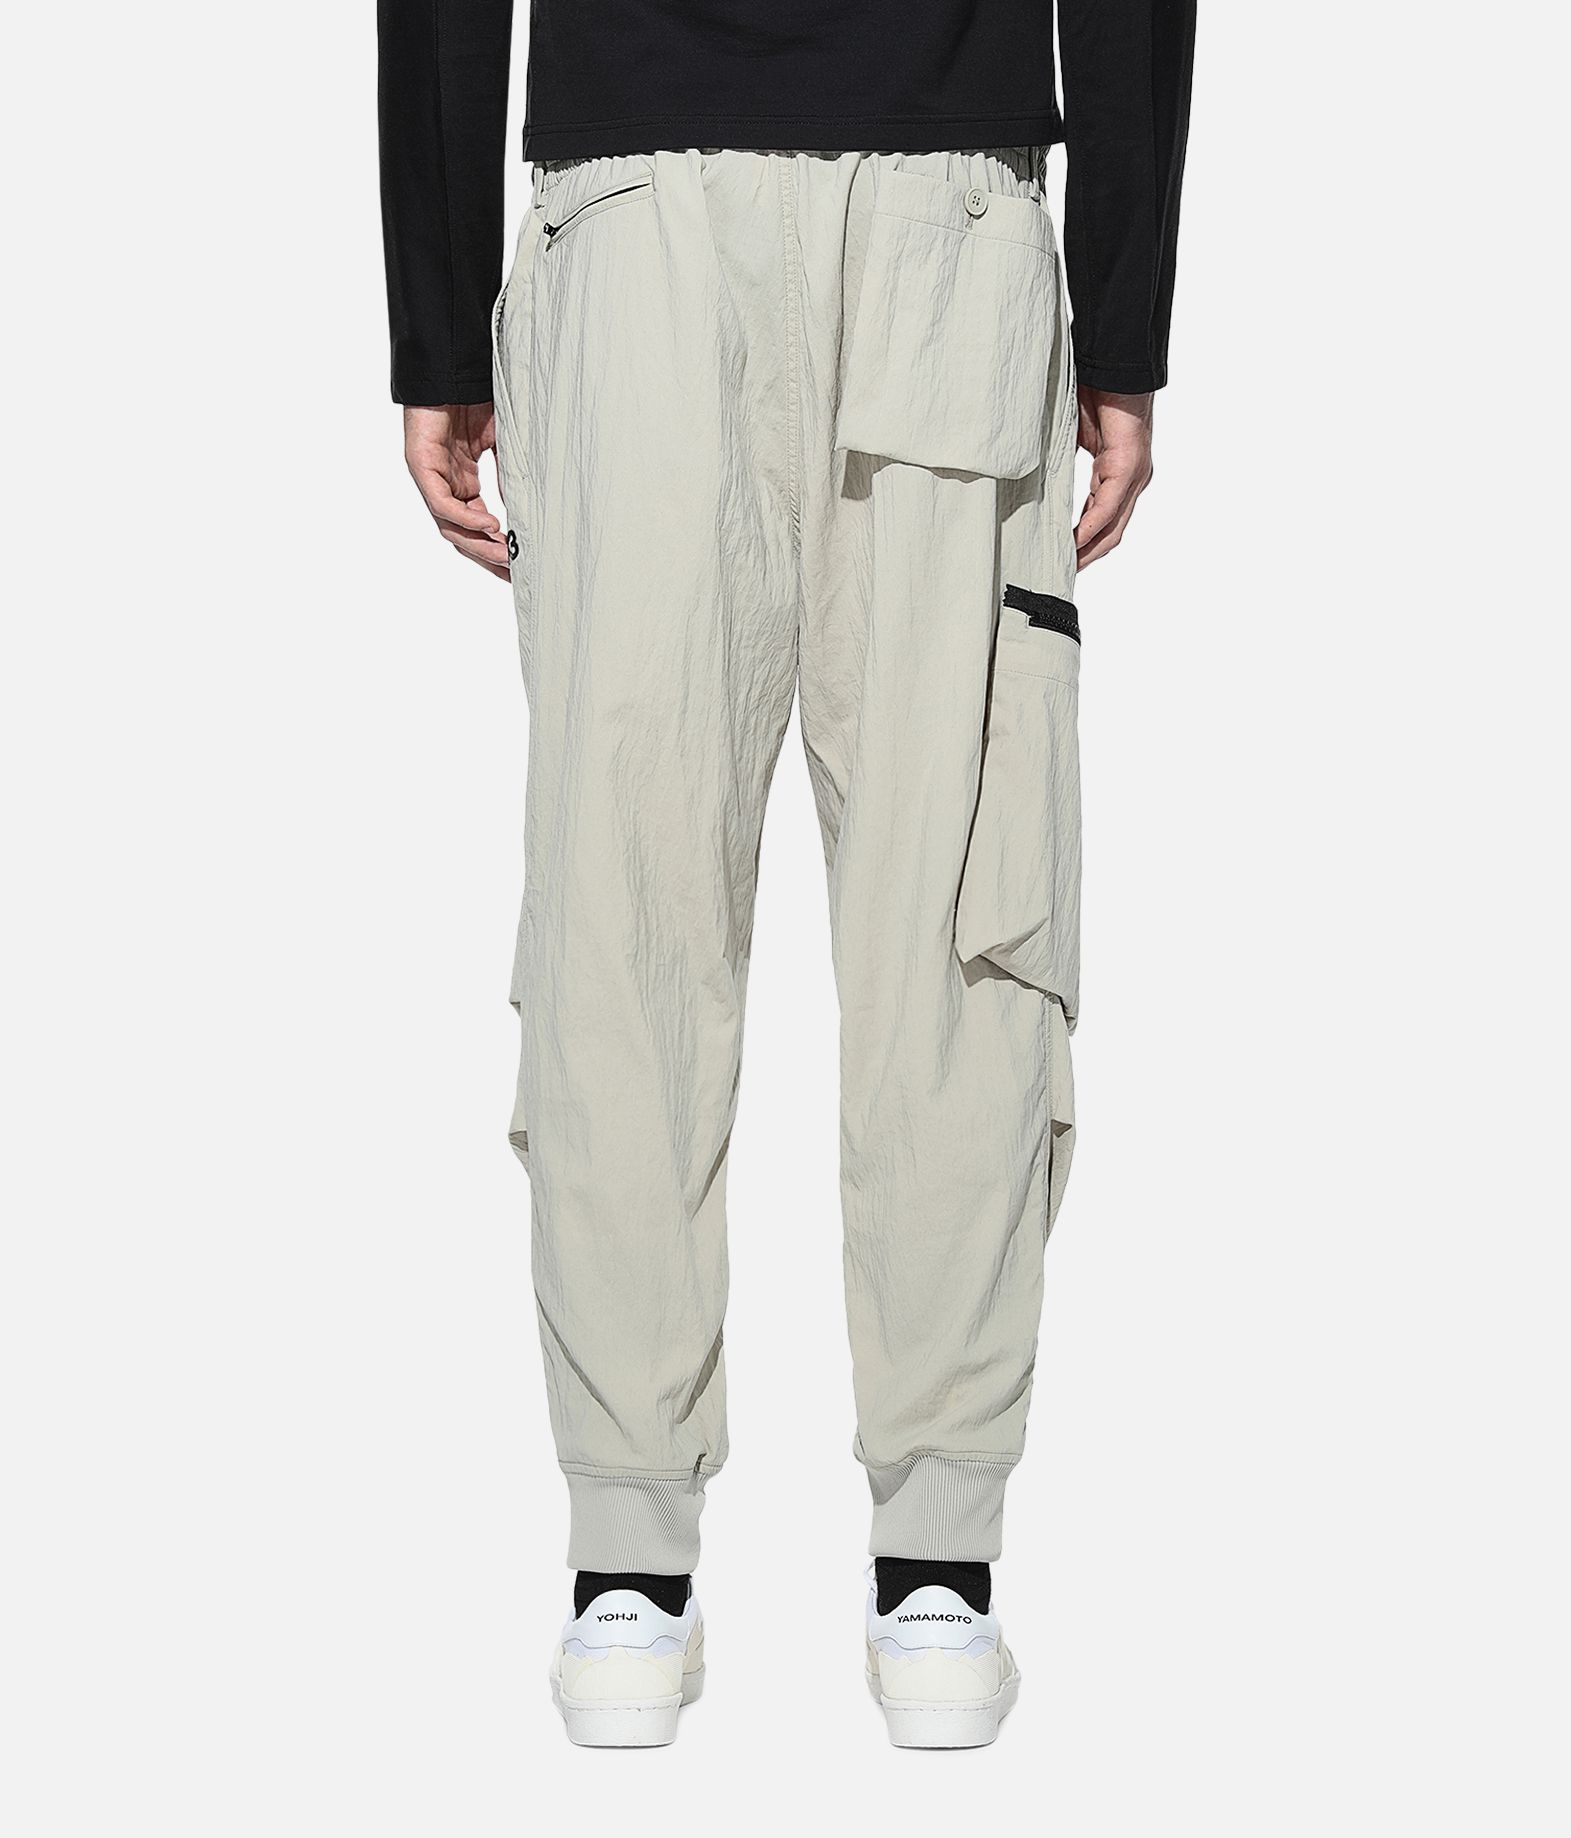 Y-3 Y-3 Cargo Pants Casual pants Man d